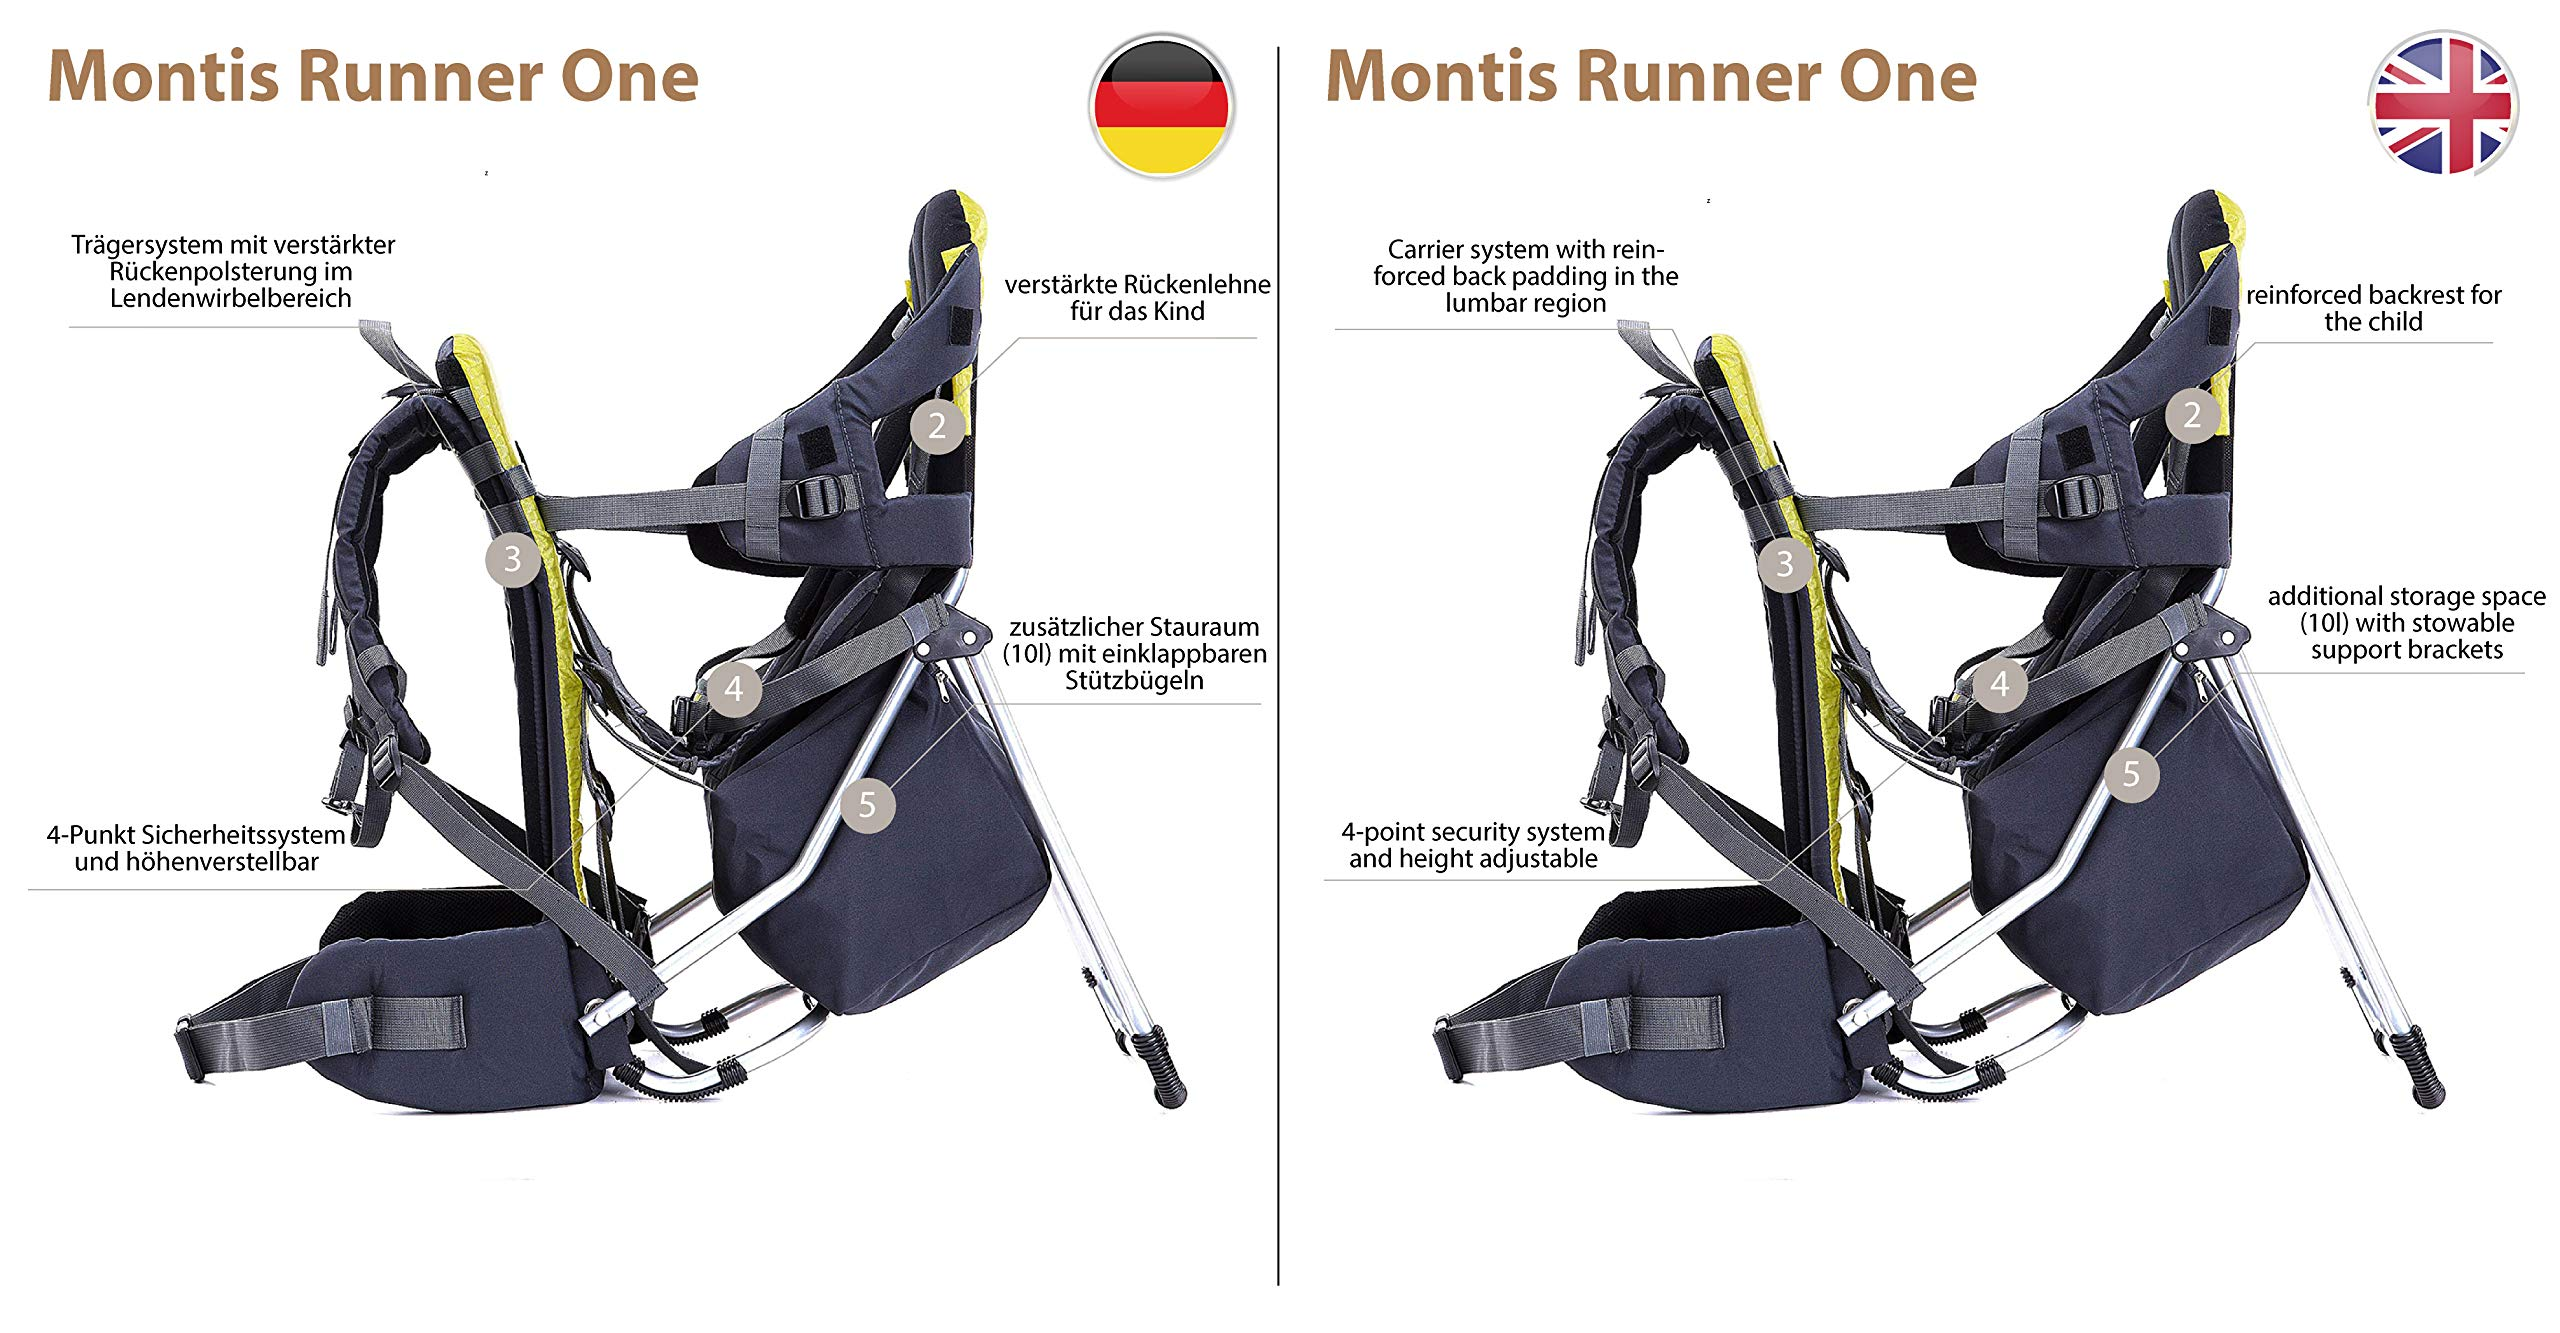 "MONTIS RUNNER ONE - Backpack/Child Carrier - Holds up to 25kg M MONTIS OUTDOOR 70cm tall, 37cm wide | Carries up to 25kg, seat bag 10L | Approx. 1.9kg Easy-clean outer material | Fully-adjustable 4-point child harness with ""pull-over"" system Fleece lined, uncovered sides 